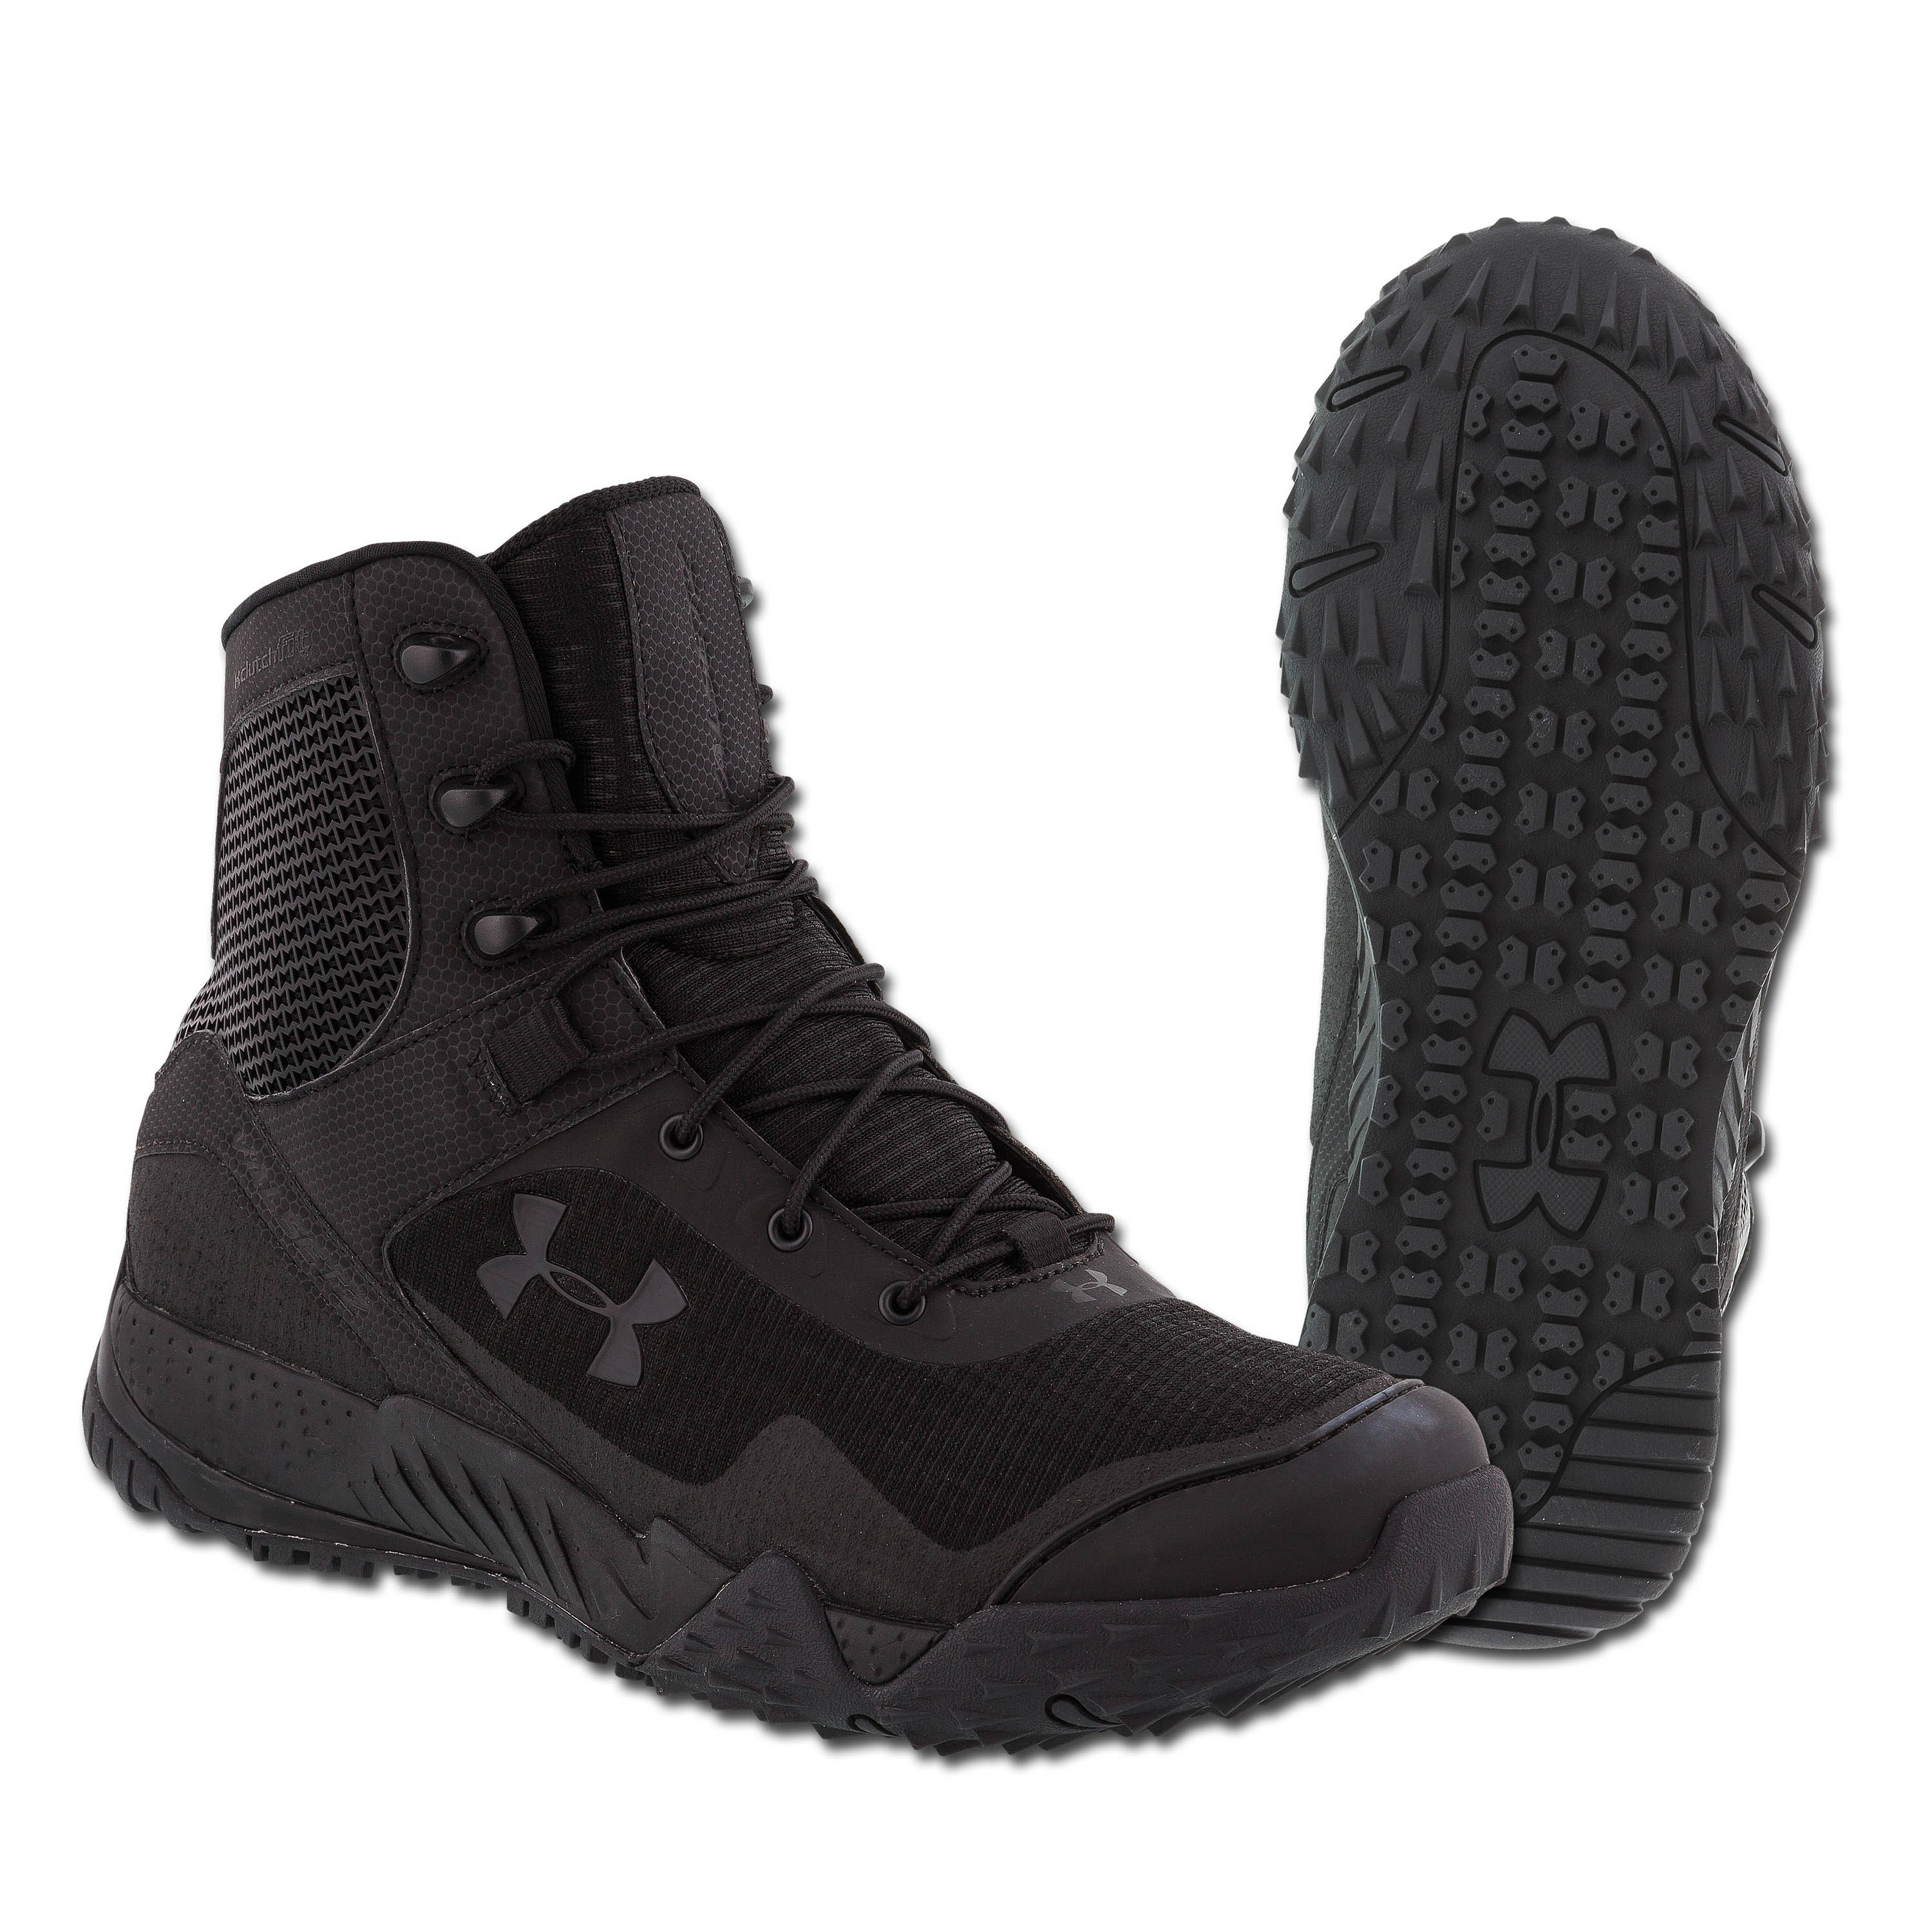 Under Armour Valsetz Tactical RTS Boot black